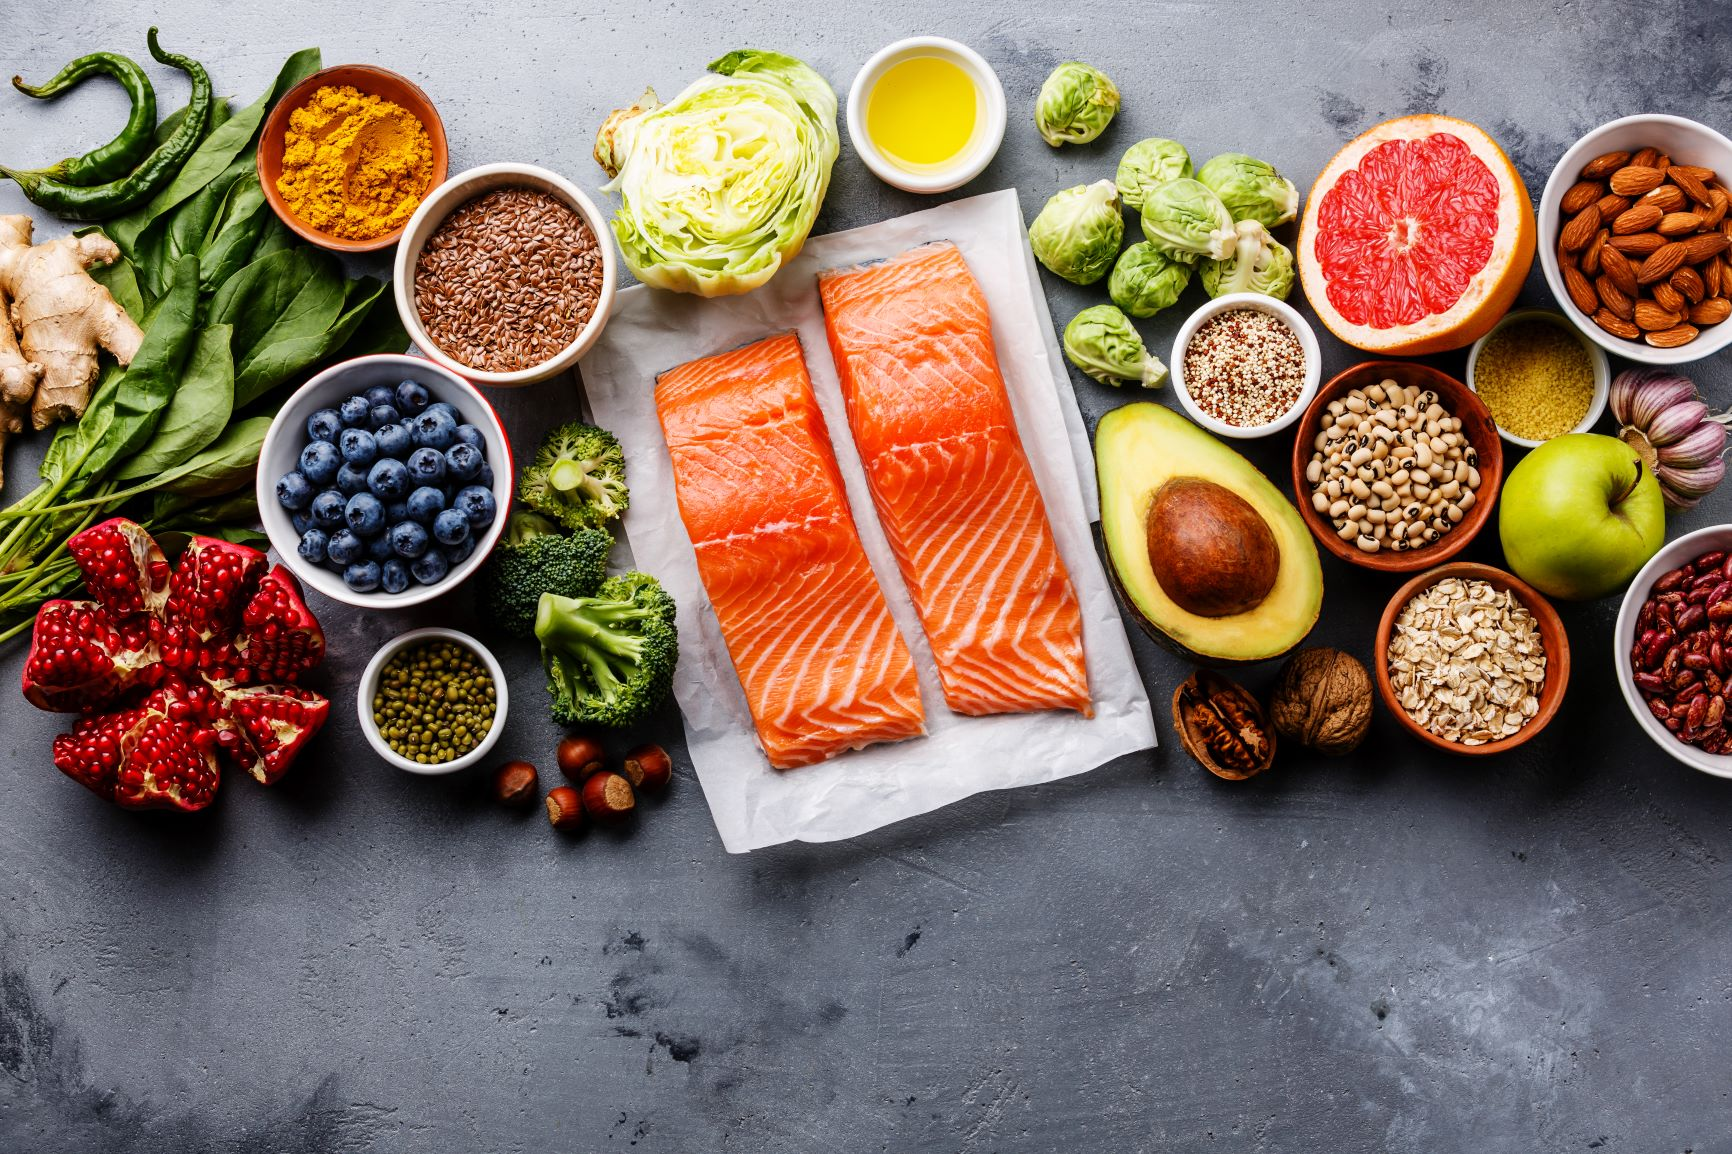 Health foods on a worktop including salmon